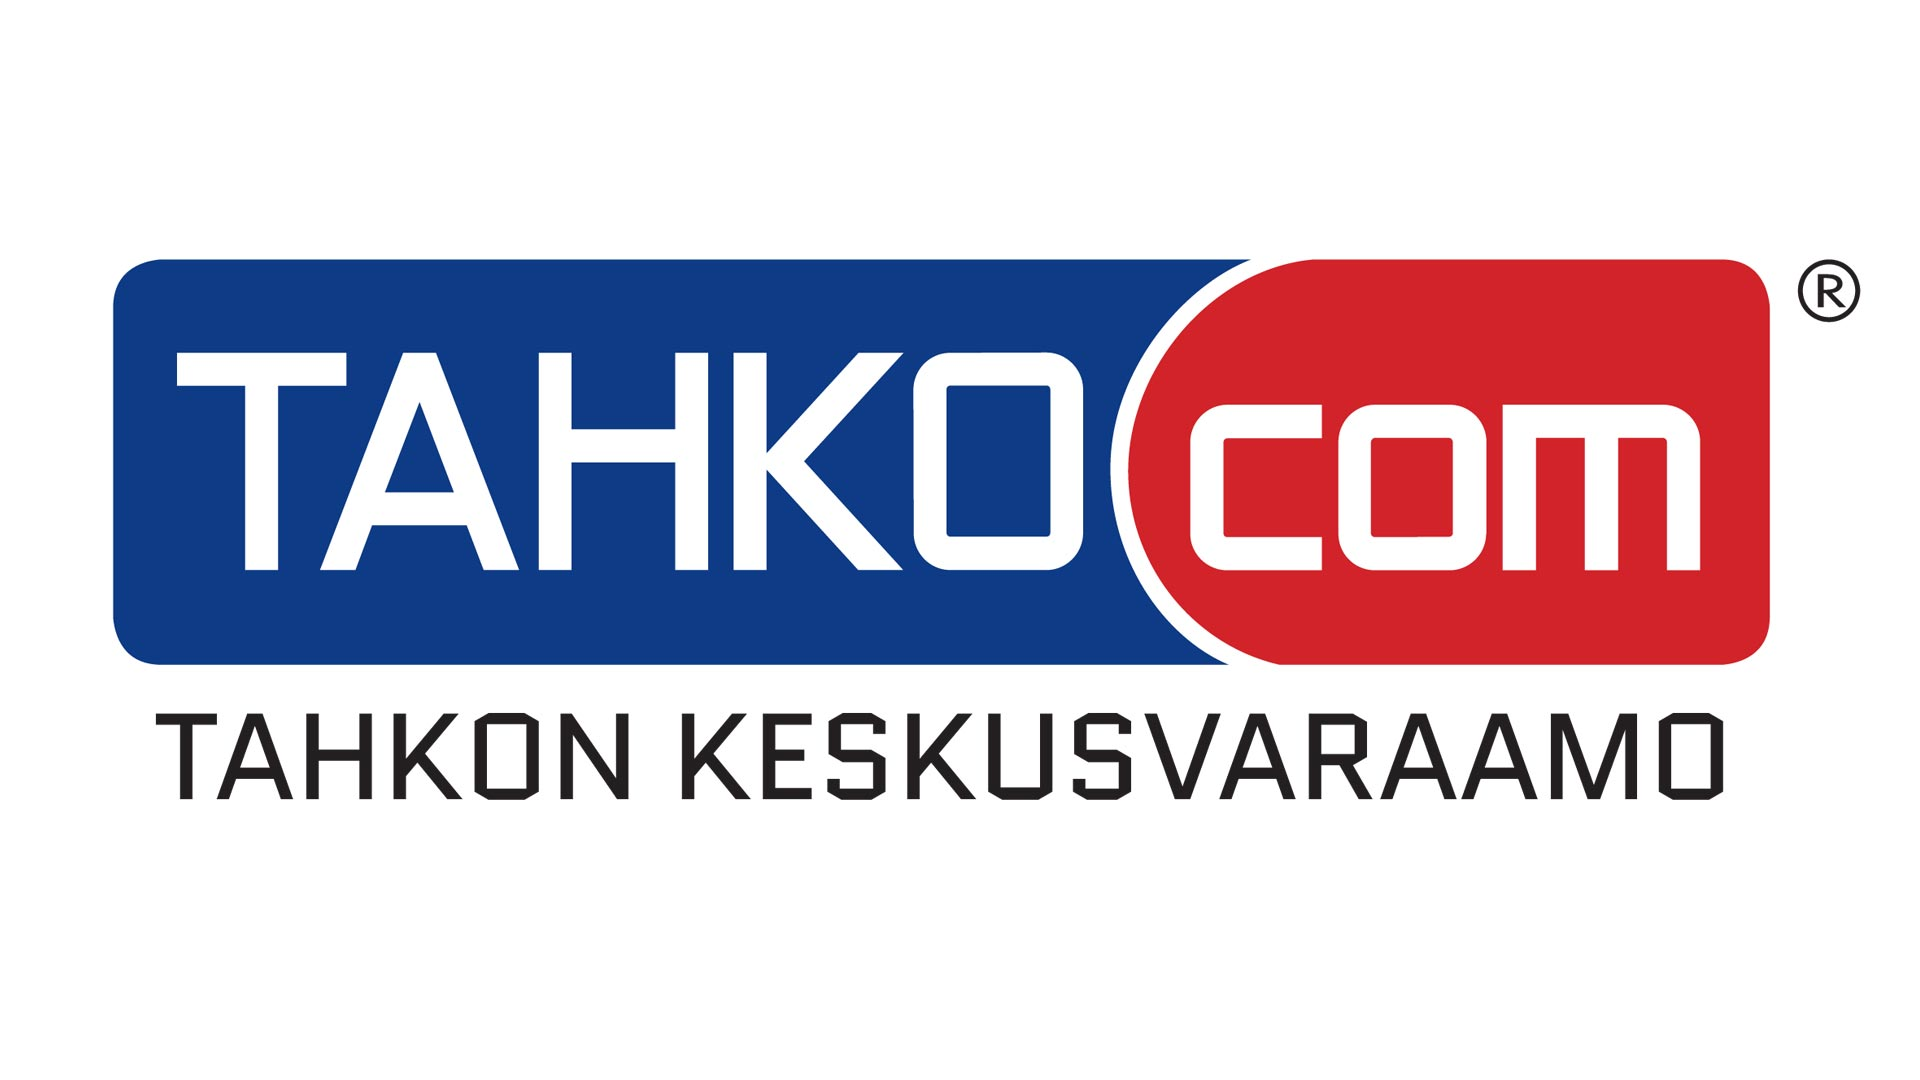 Central Booking Office TAHKOcom Oy